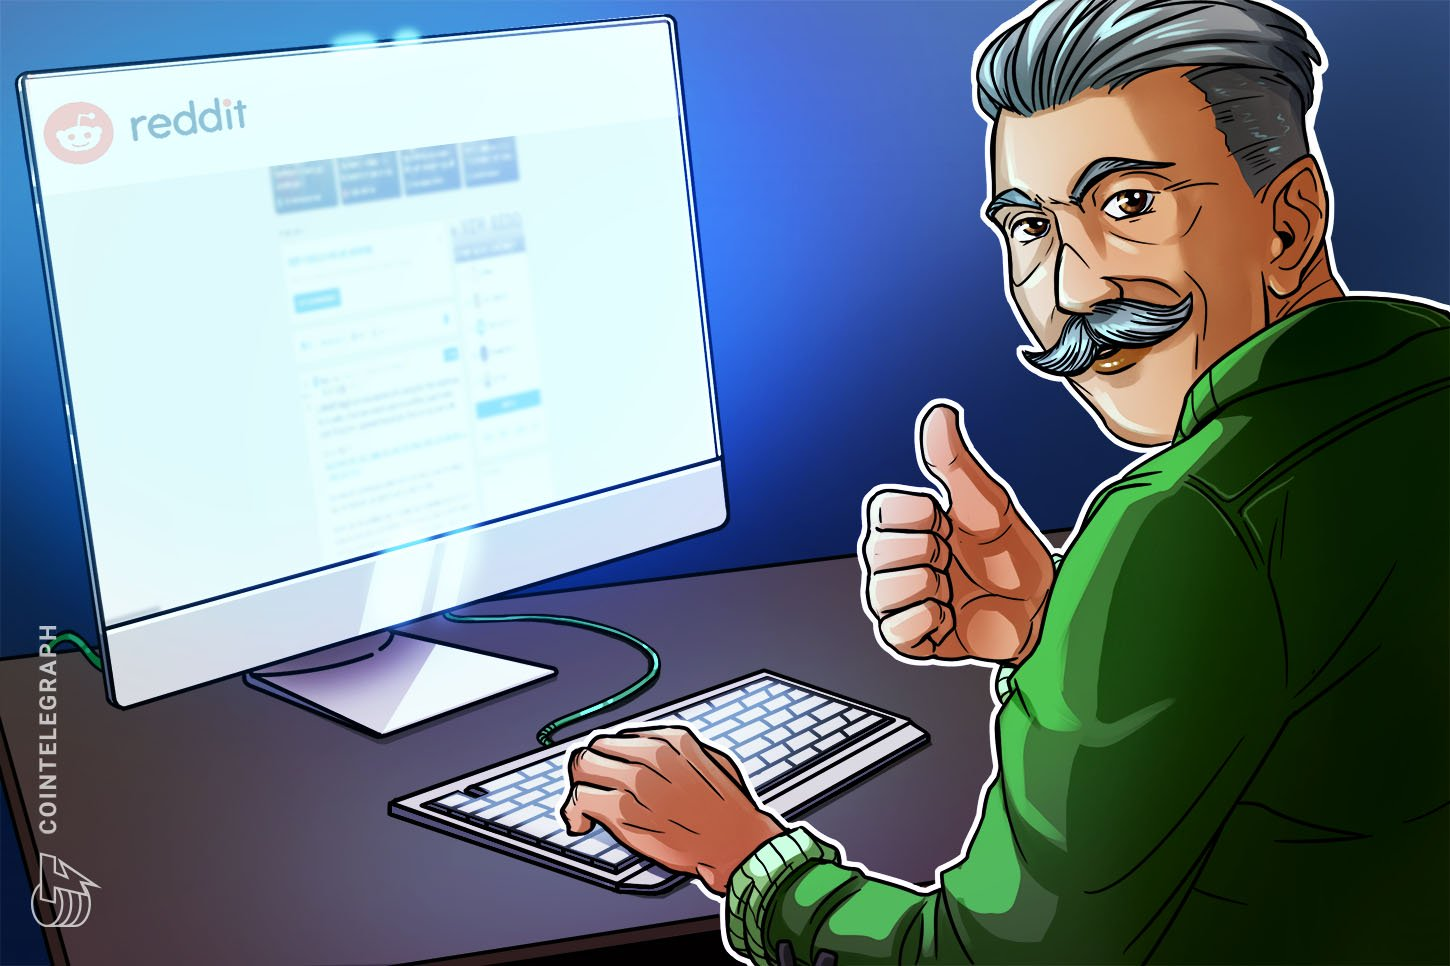 Reddit's New Blockchain Community Points Can Be Controlled 'Just Like Bitcoin'